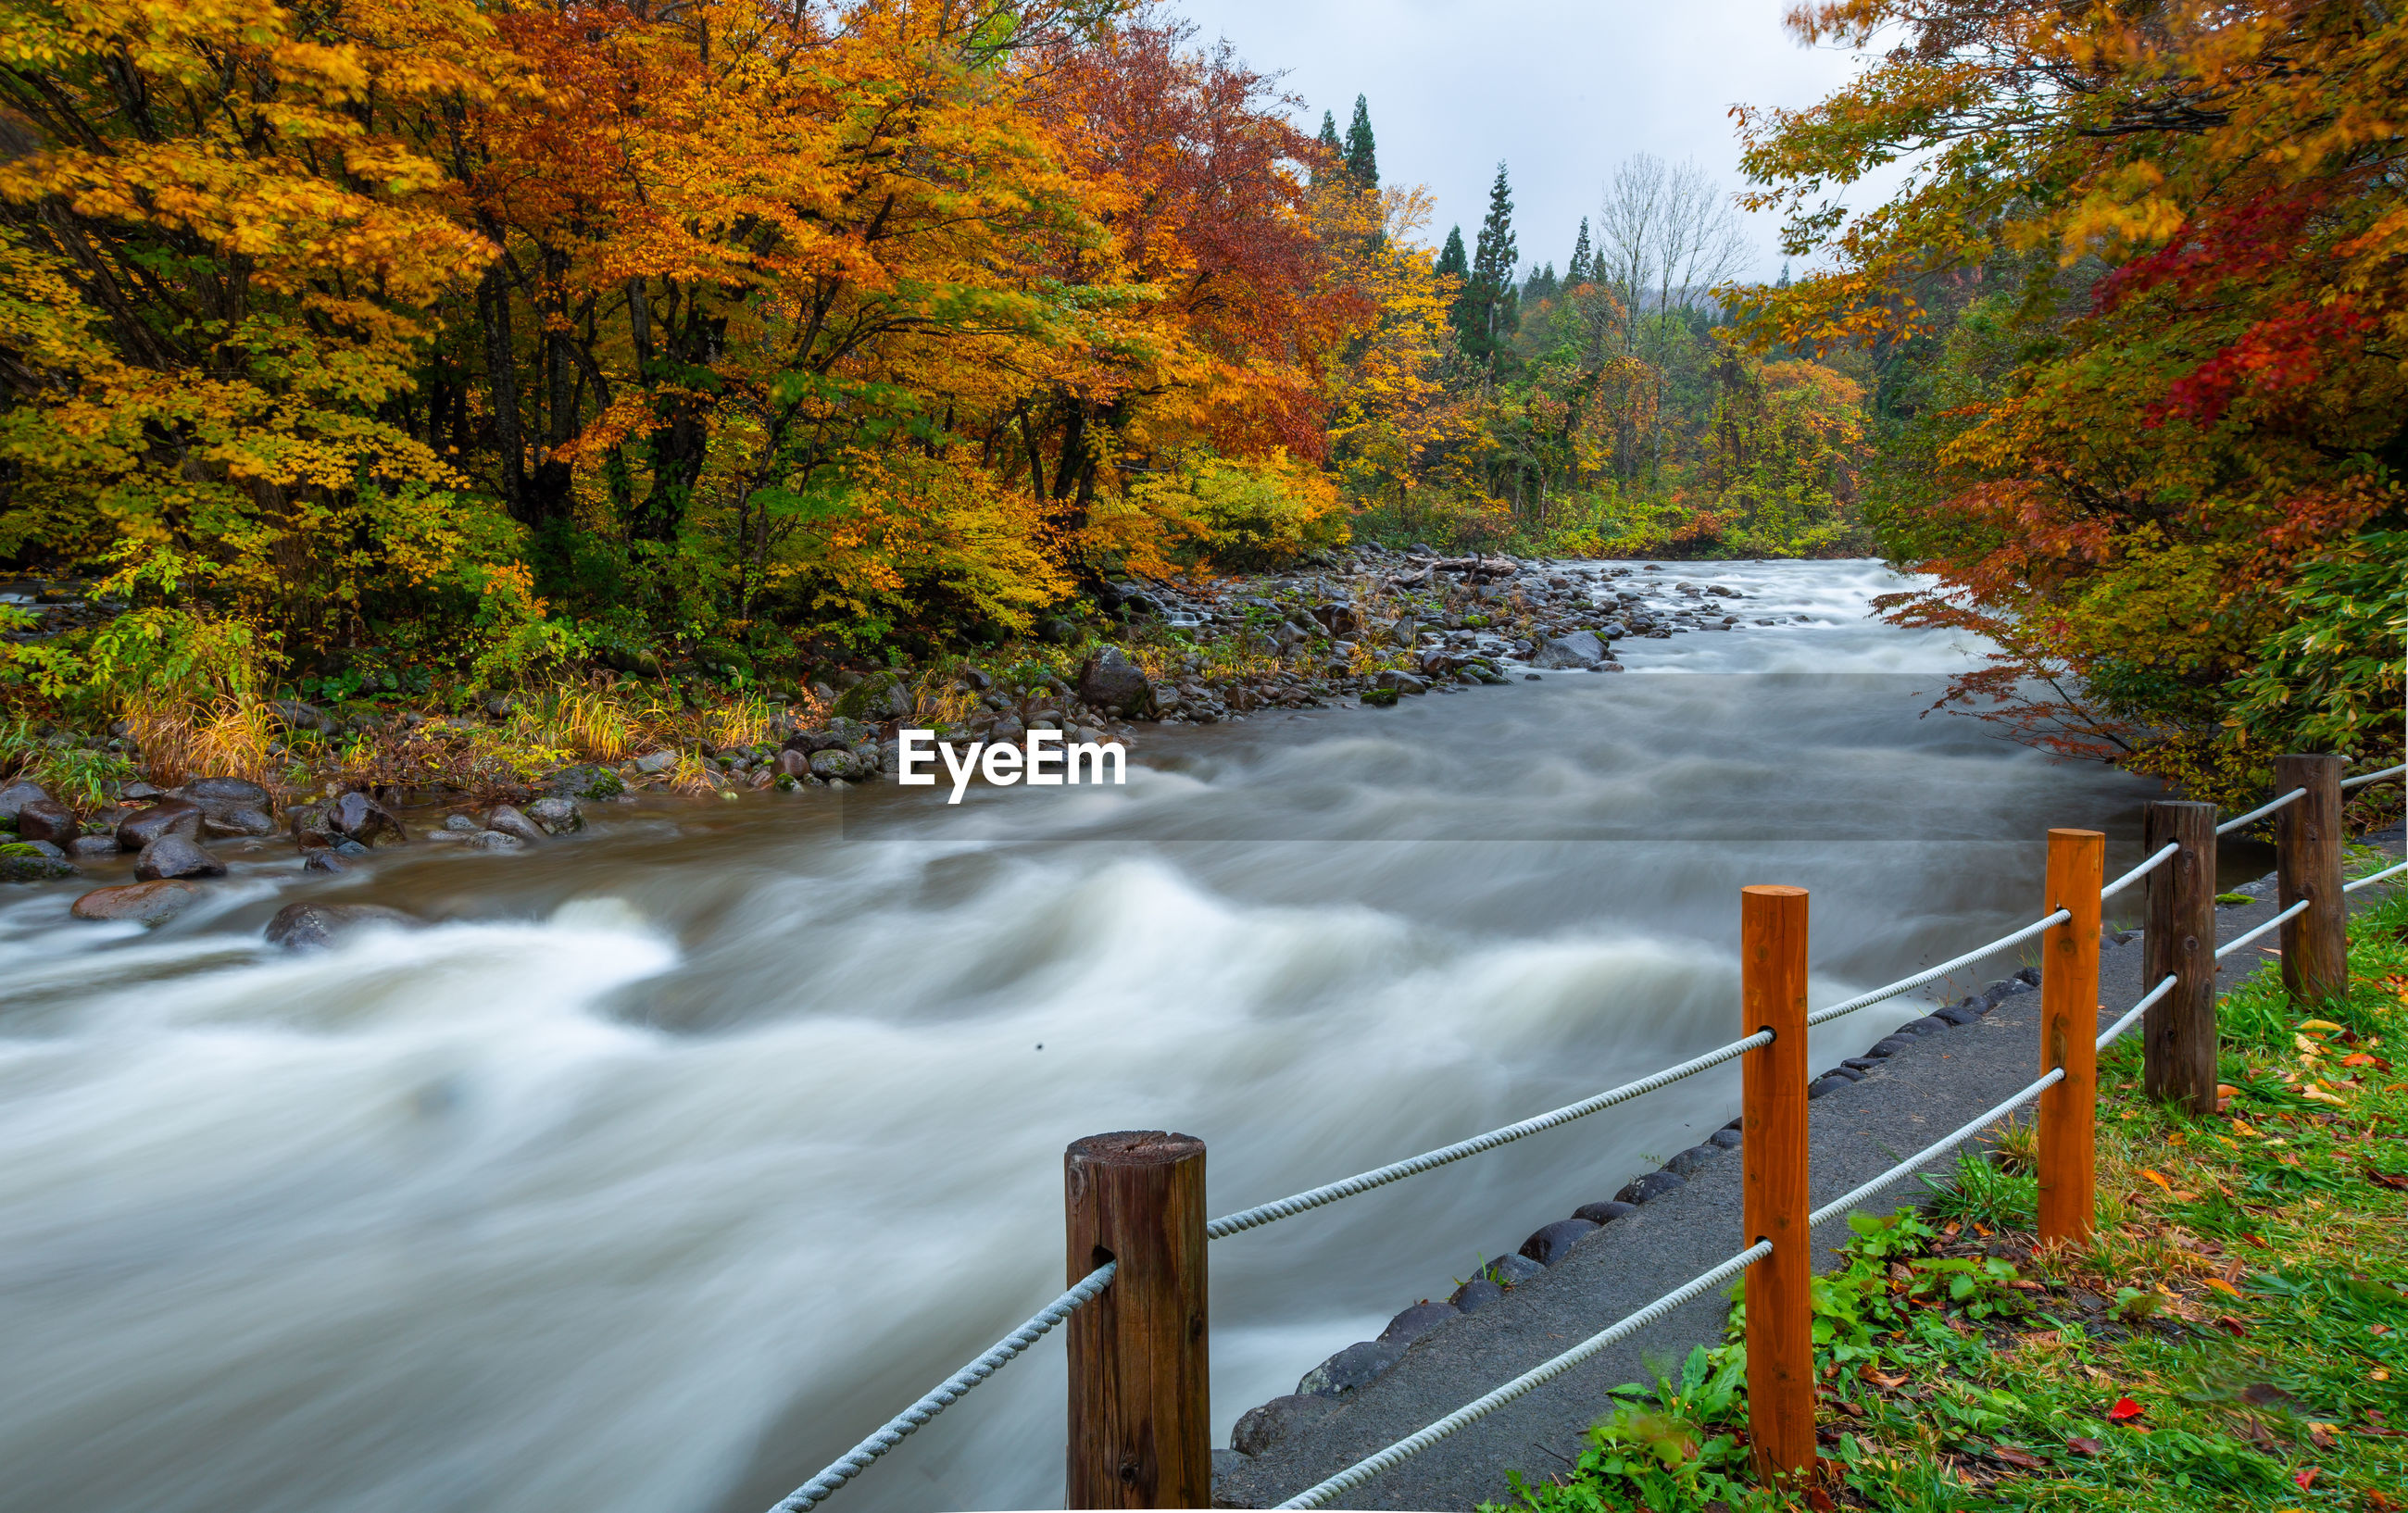 SCENIC VIEW OF RIVER FLOWING AMIDST TREES DURING AUTUMN